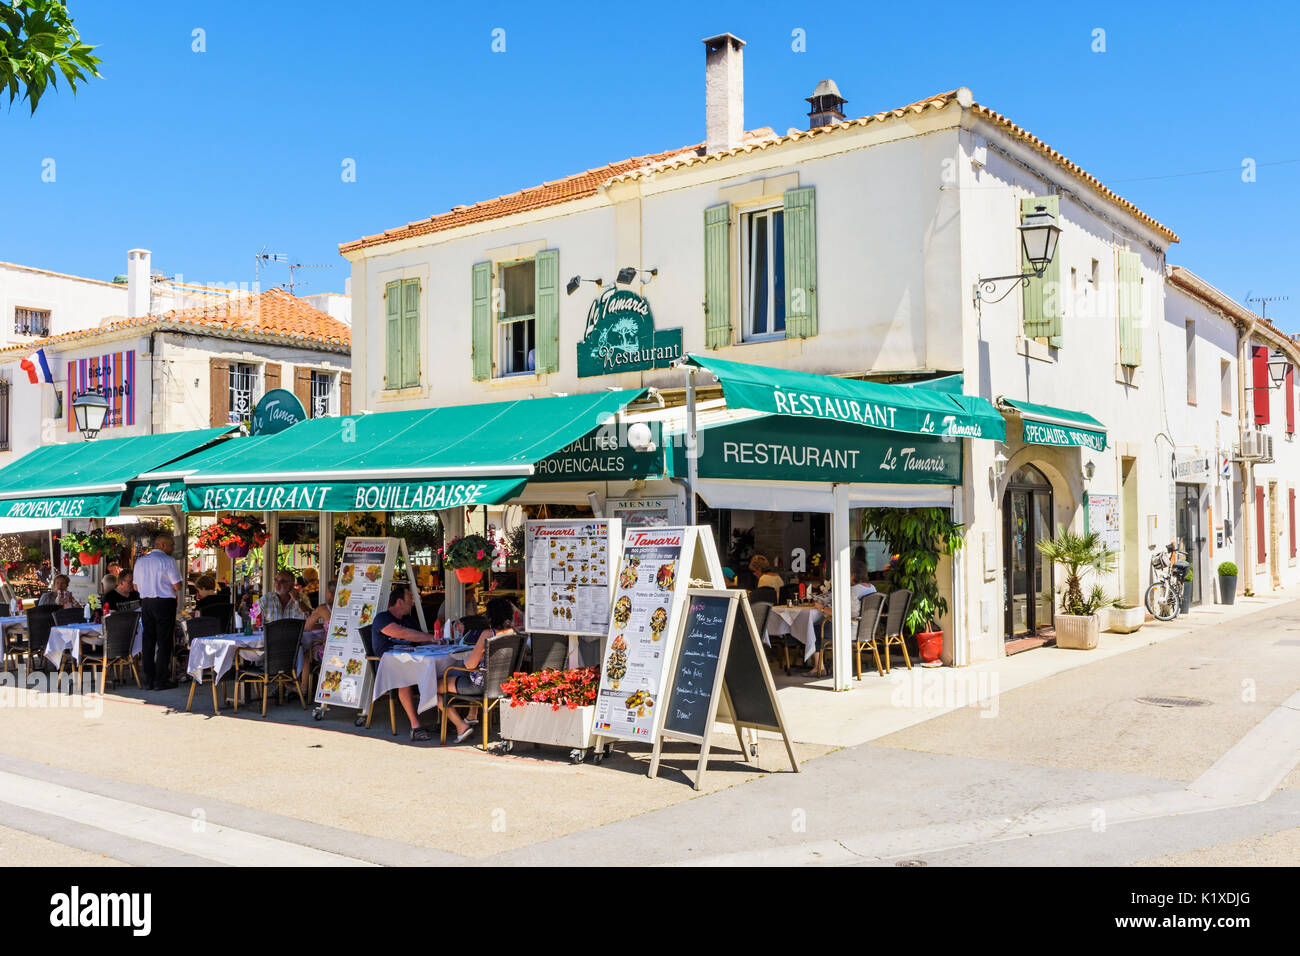 camargue france restaurant stock photos camargue france restaurant stock images alamy. Black Bedroom Furniture Sets. Home Design Ideas